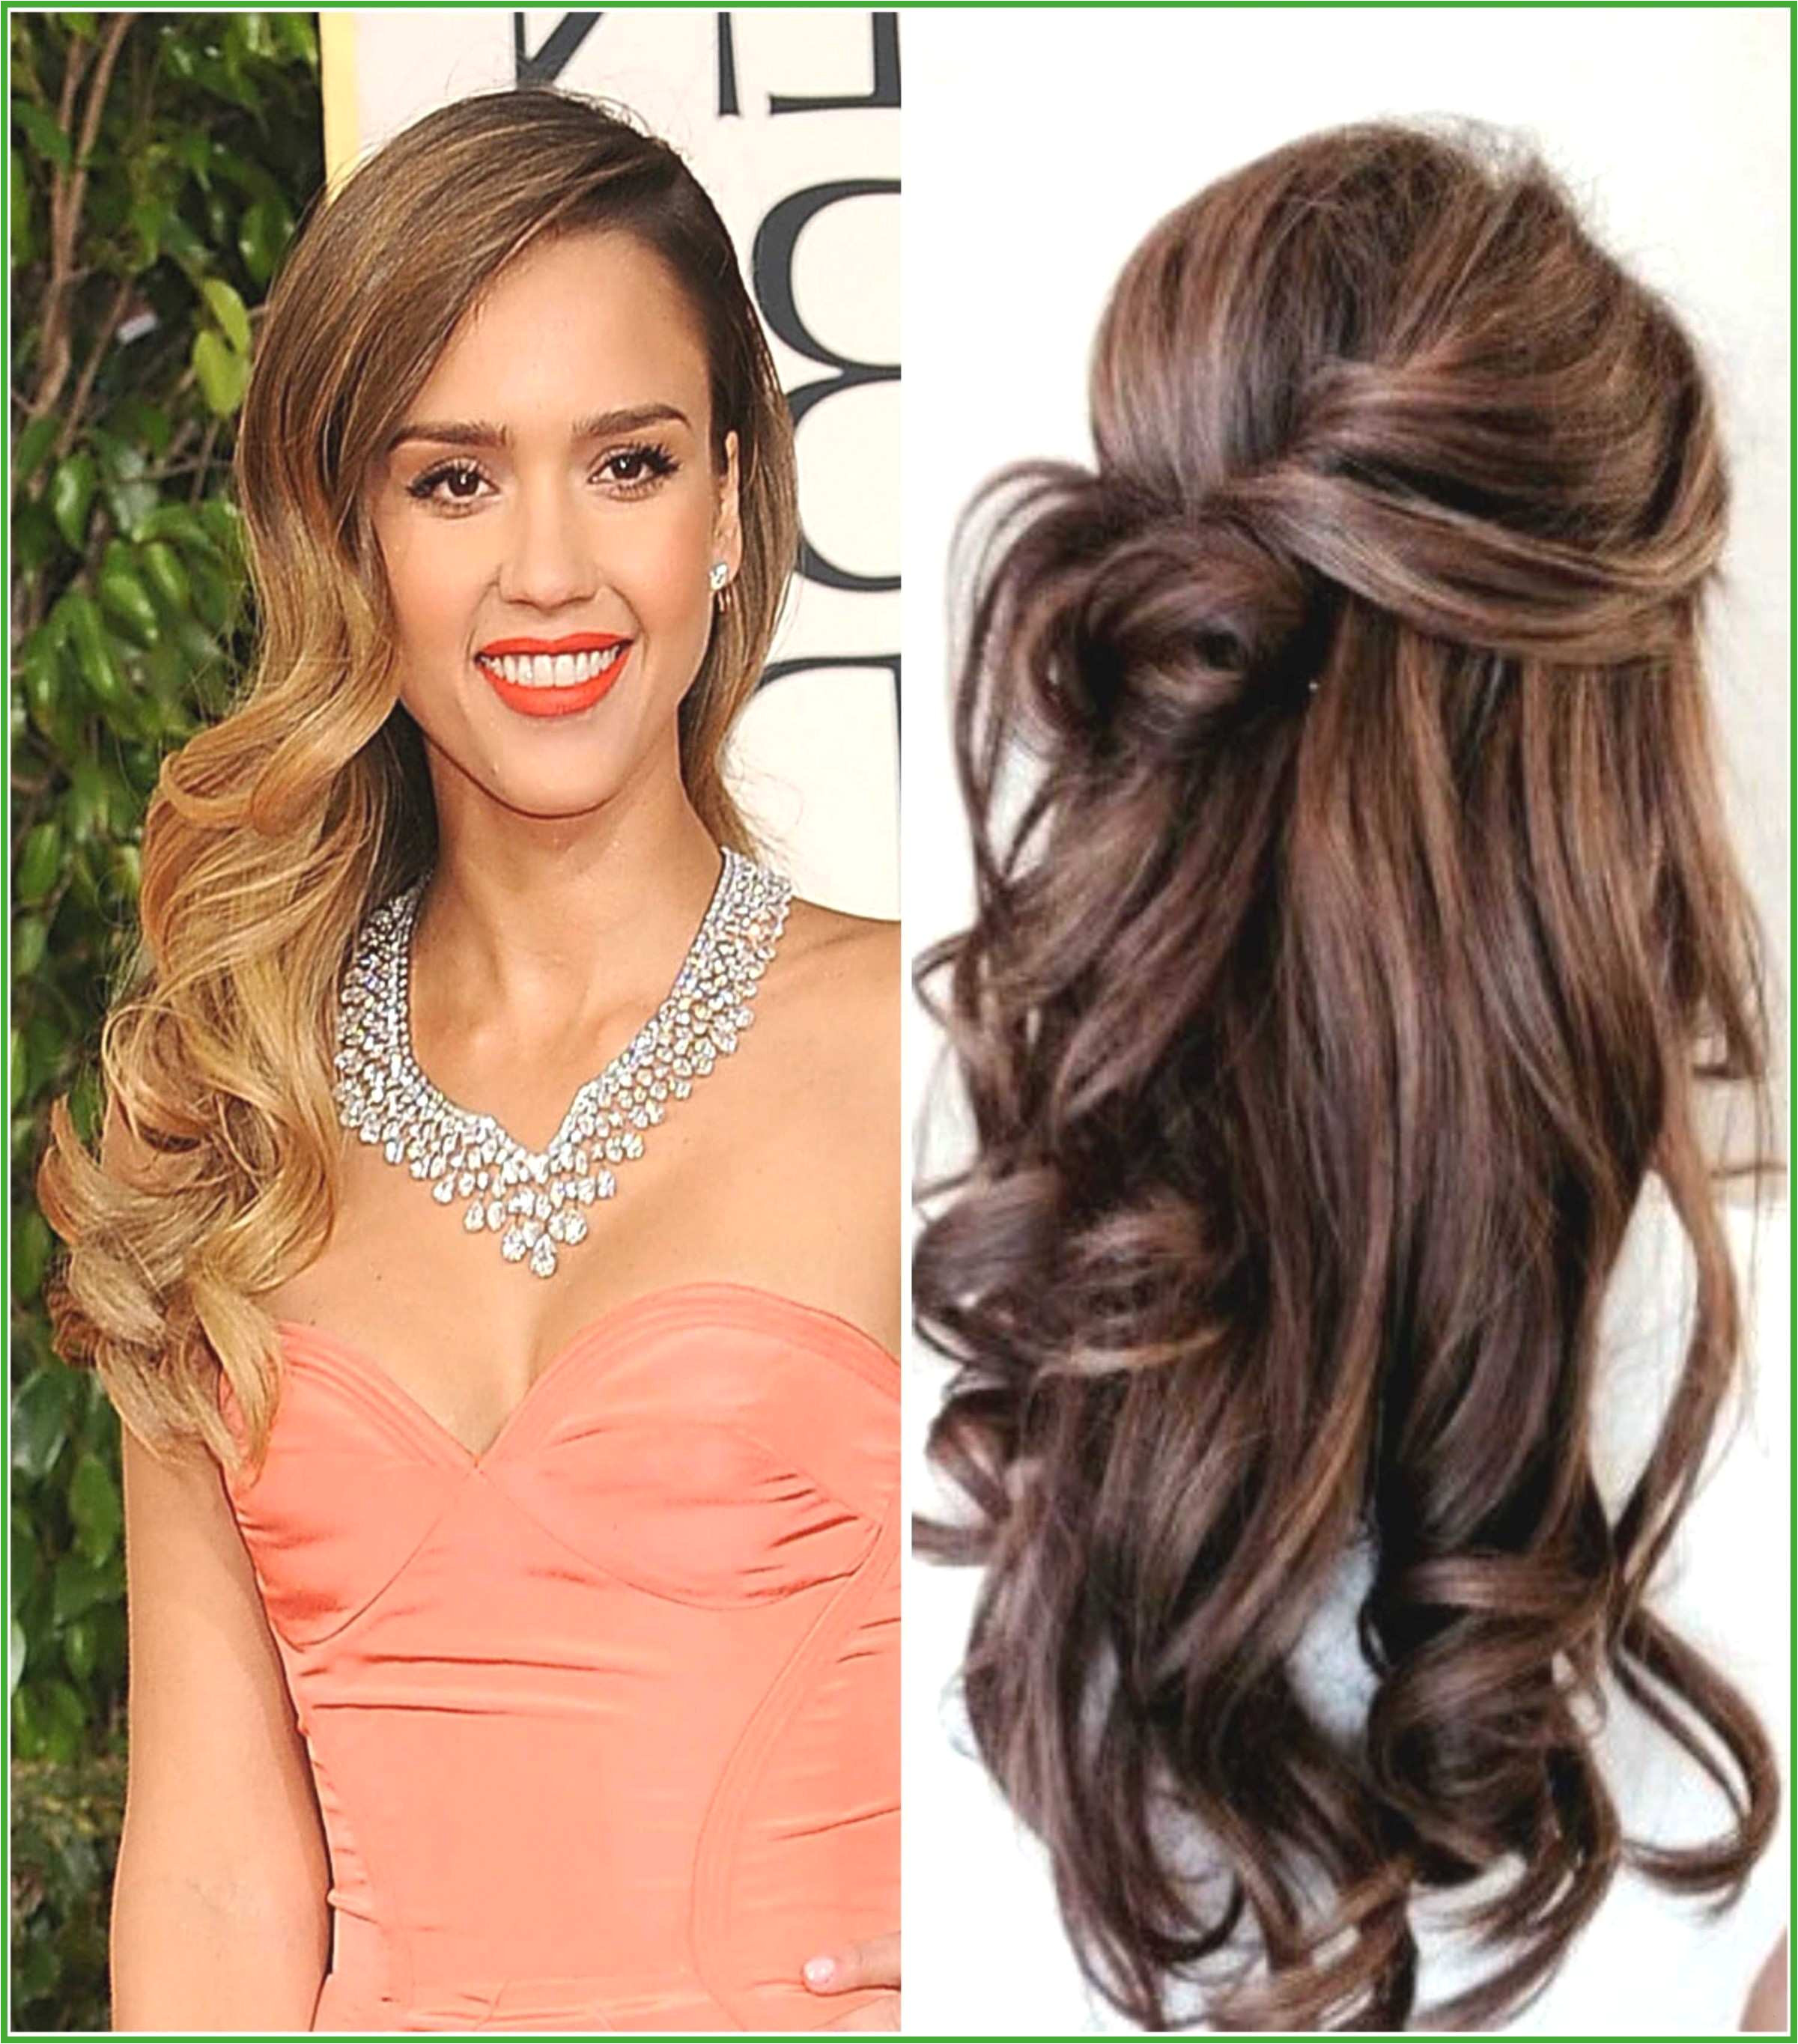 Cool Long Hairstyles for Girls Elegant Hair Cuts for Girls Gallery Haircuts for Girls Fresh Fall